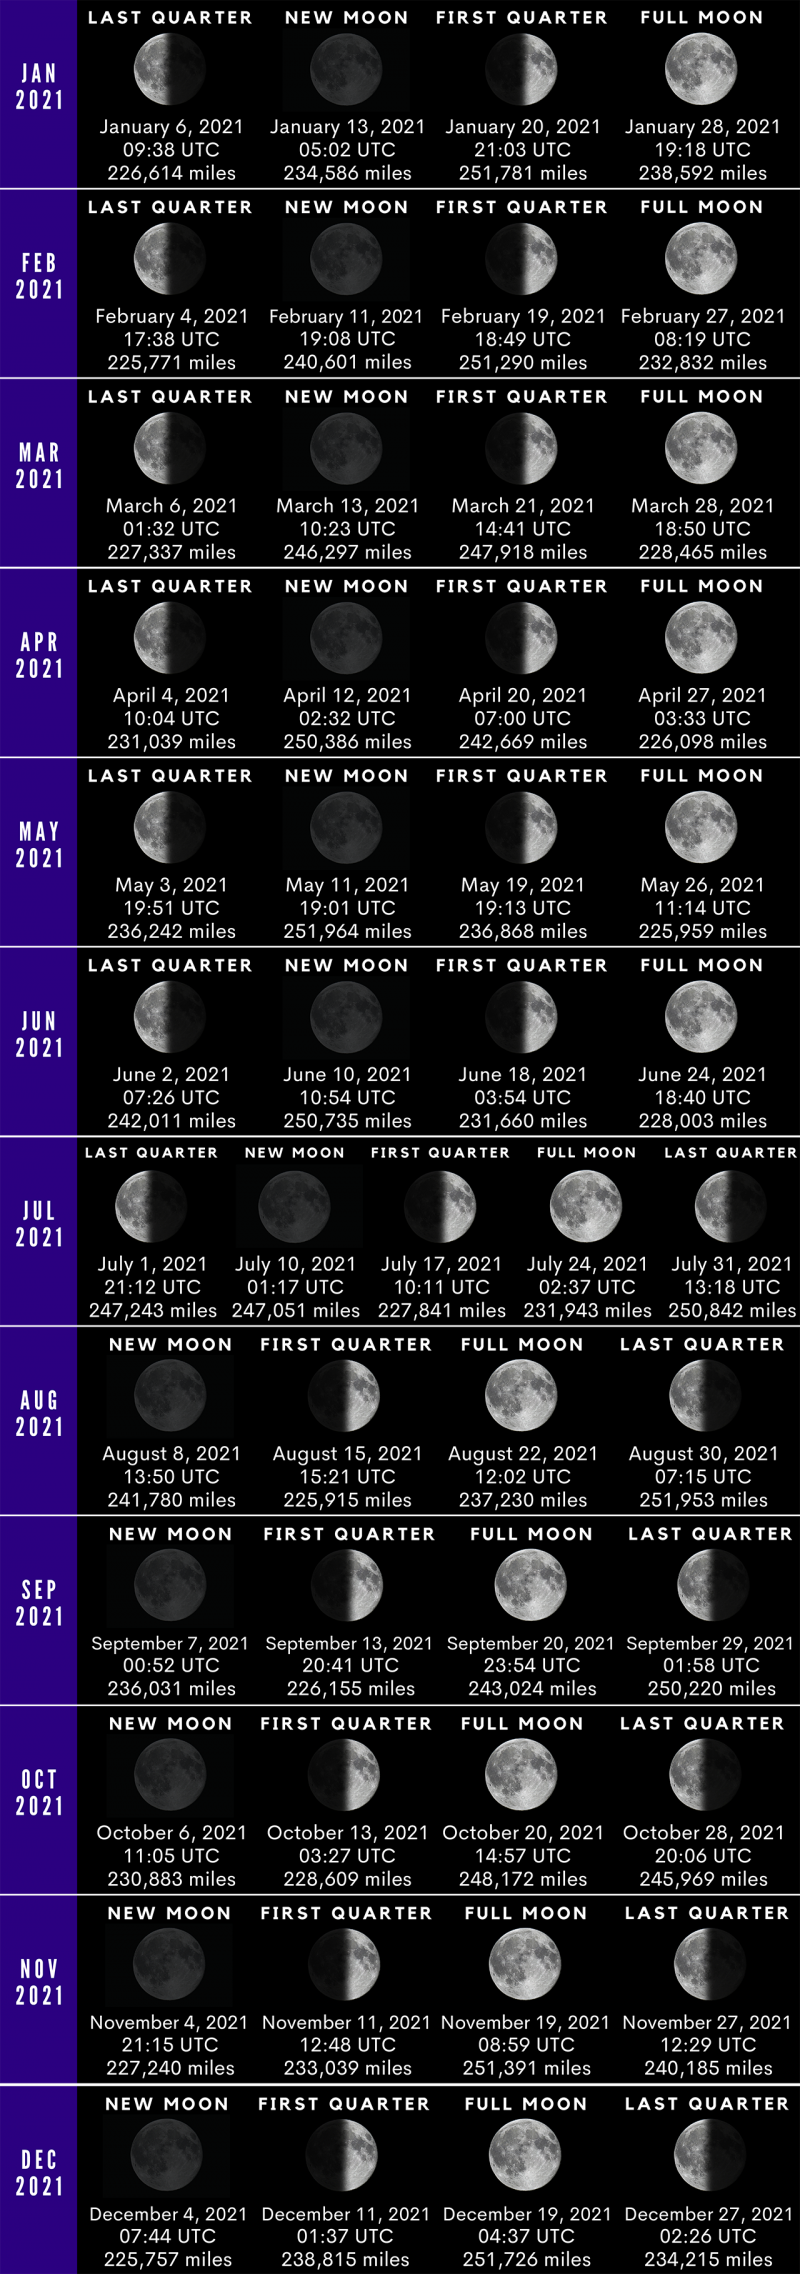 A long graphic showing the new, 1st quarter, full and last quarter moon for each month of 2021.